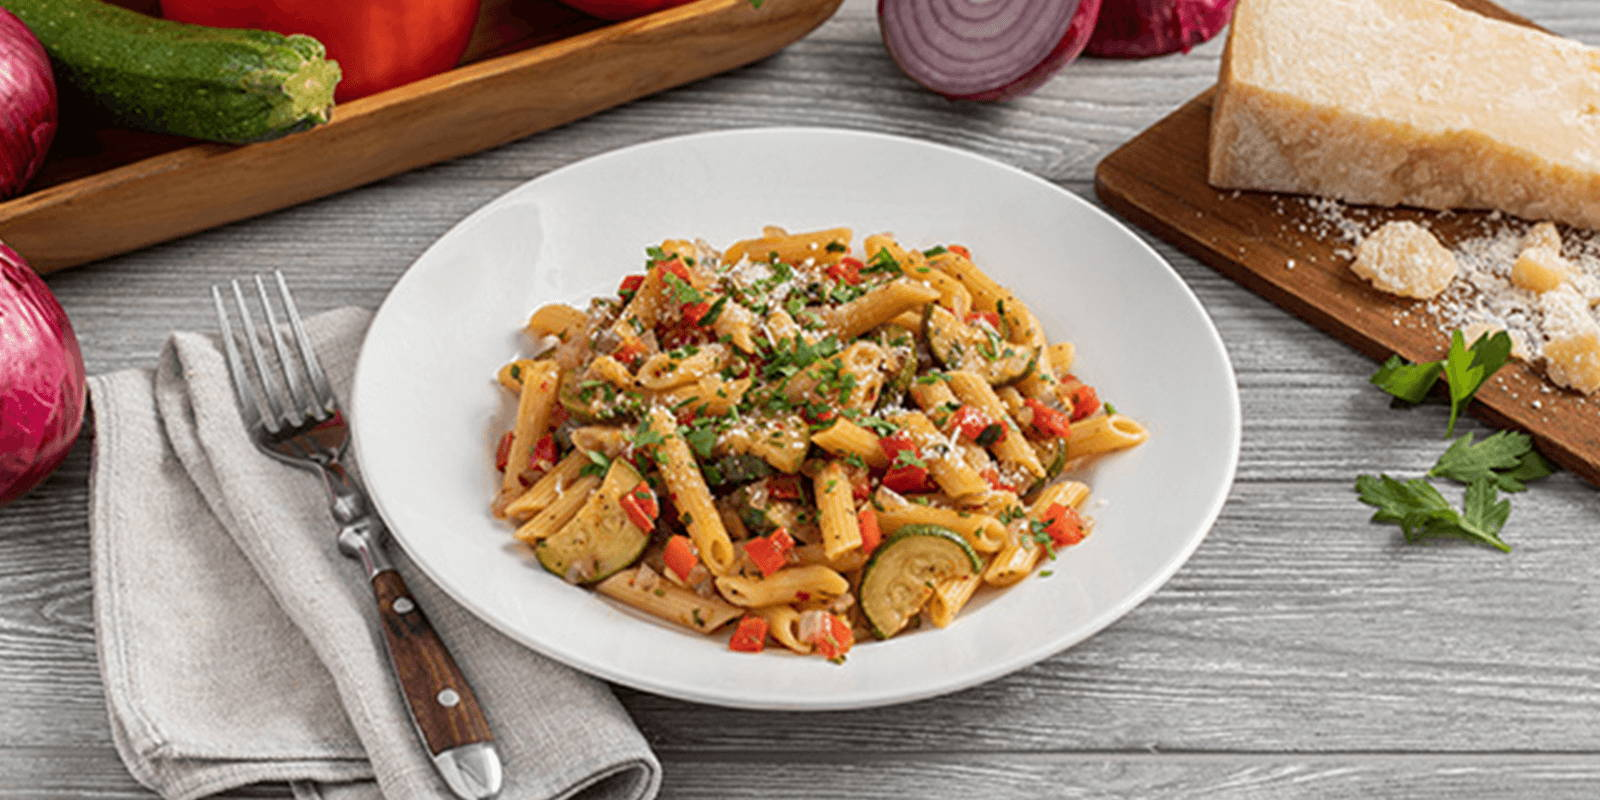 Bowl of pasta with chopped vegetables on a counter surrounded with vegetables and cheese.